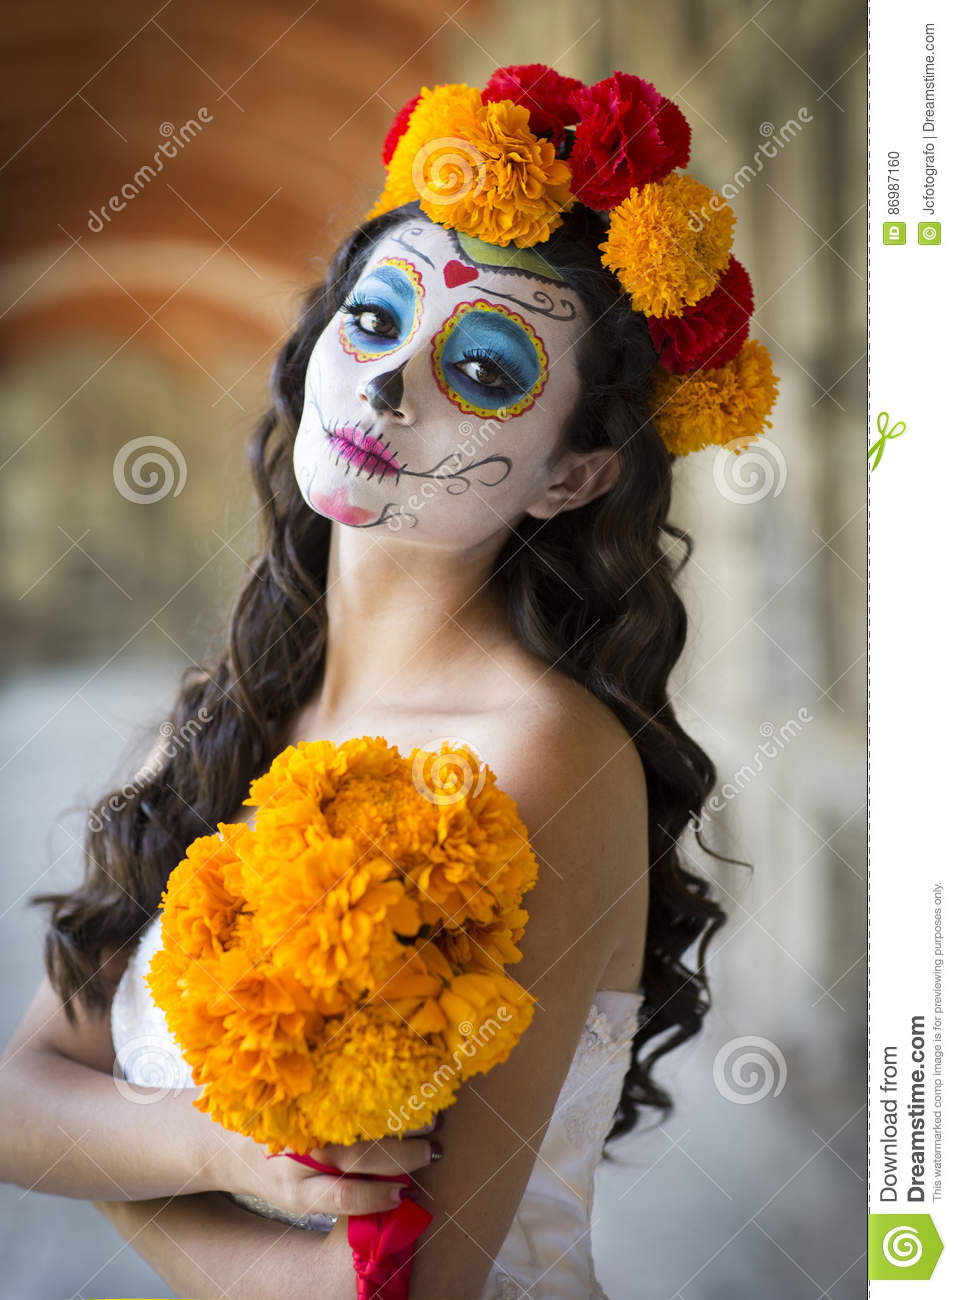 Beautiful Mexican Woman With Wedding Dress And Makeup